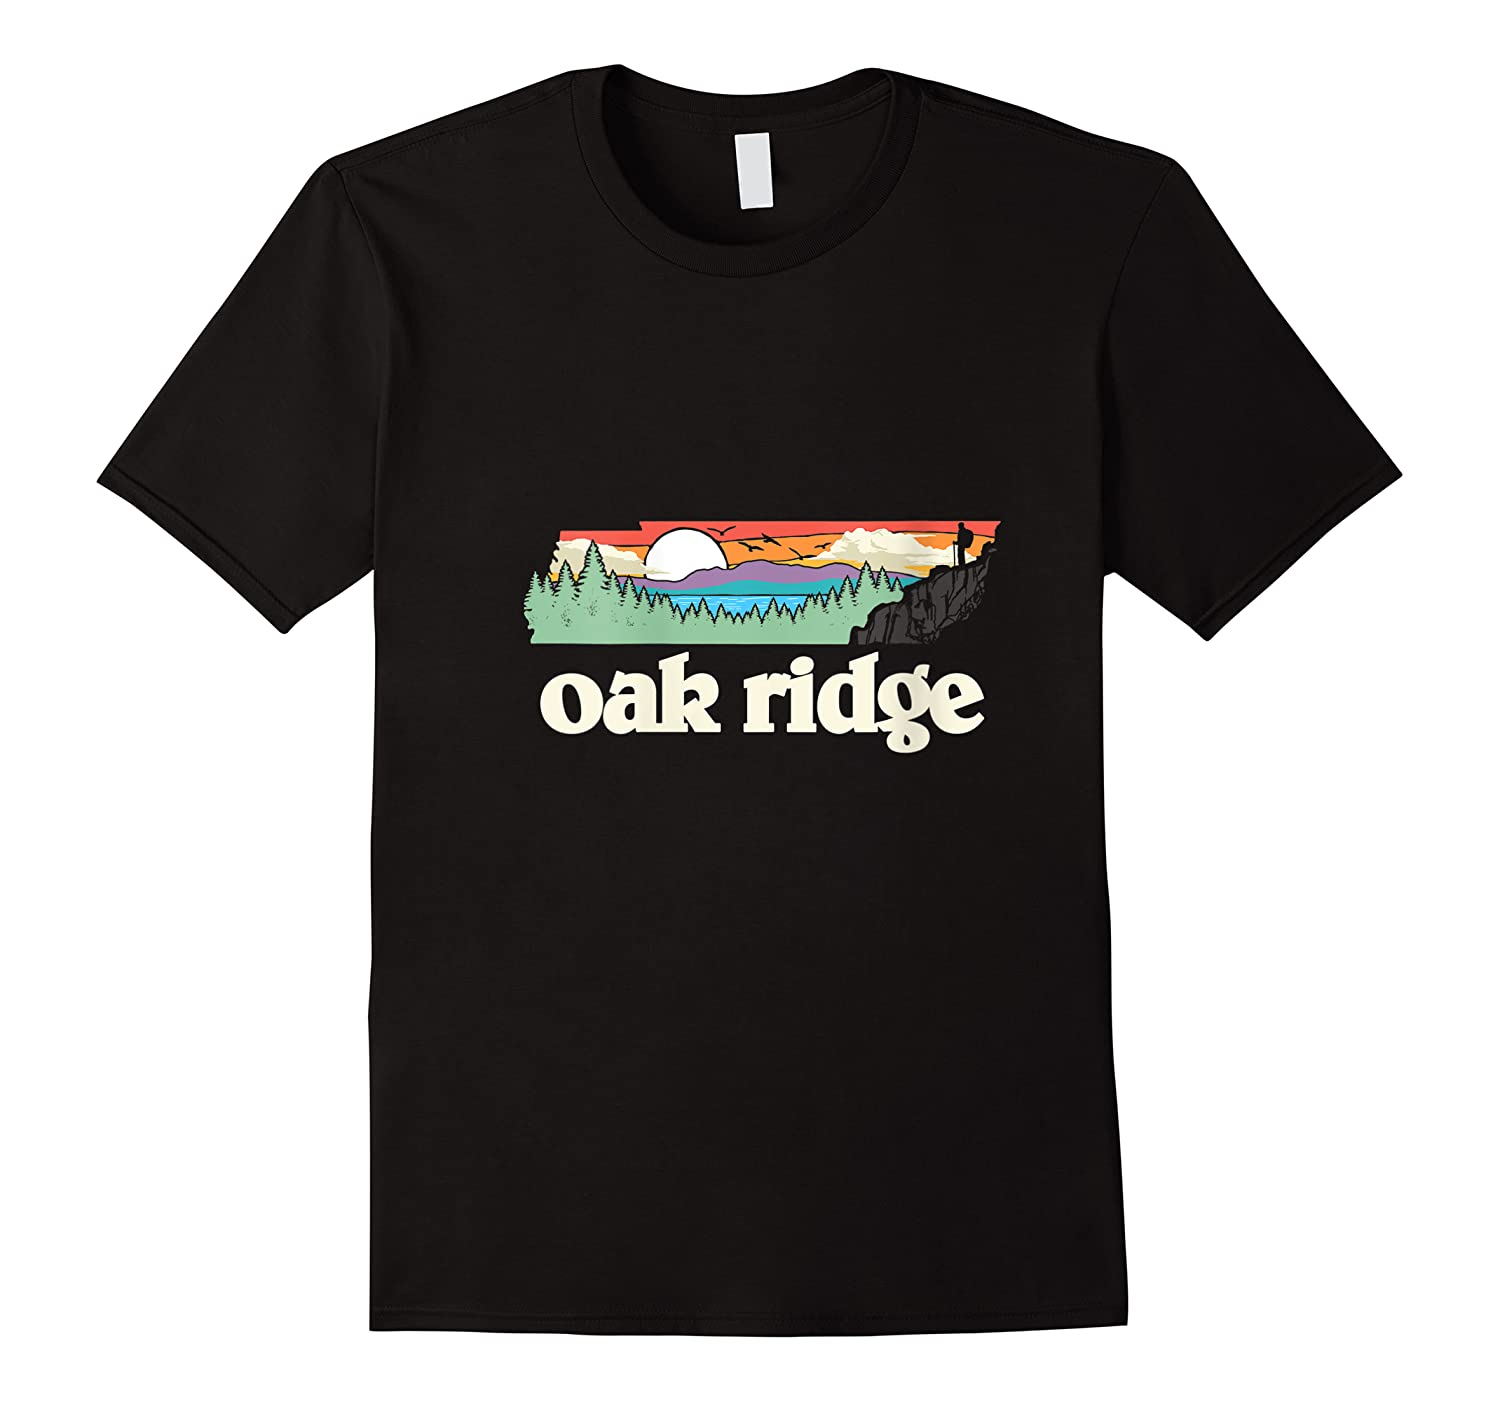 Oakland Tennessee Outdoors Retro Nature Graphic T-shirt